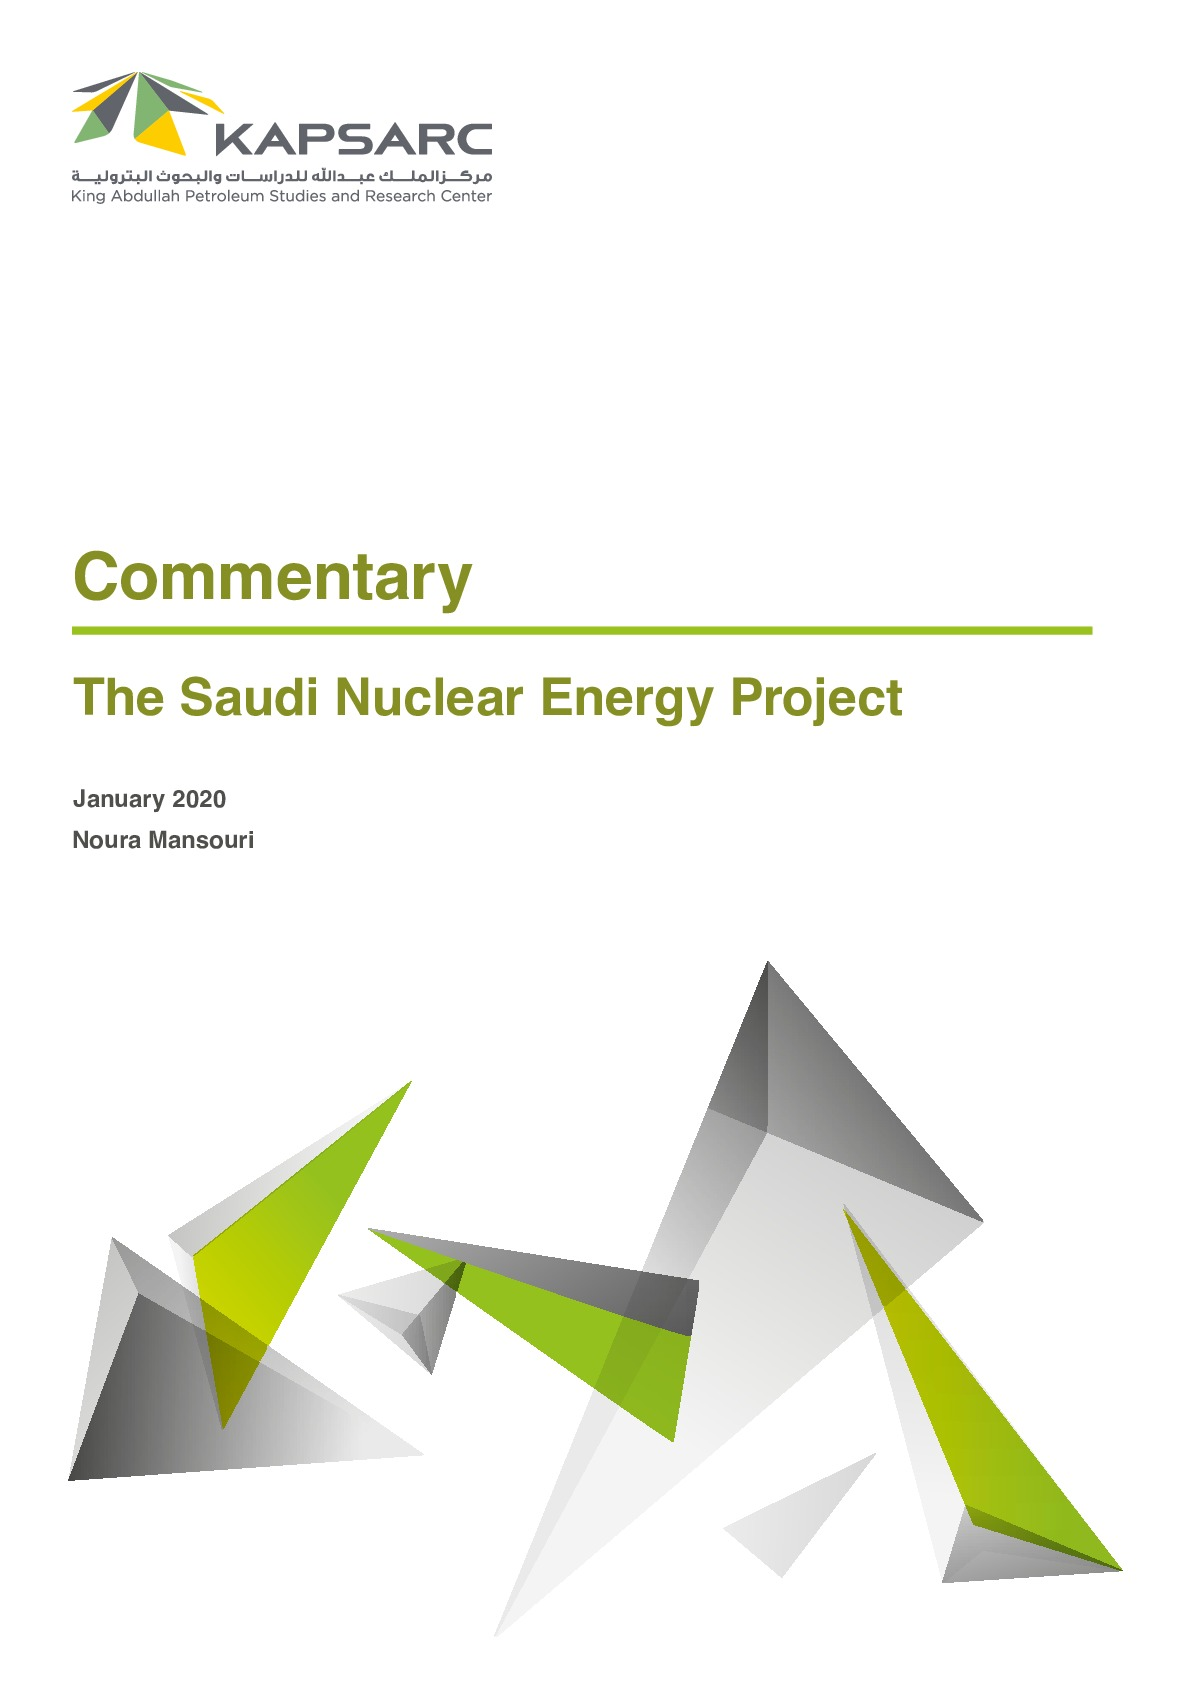 The Saudi Nuclear Energy Project